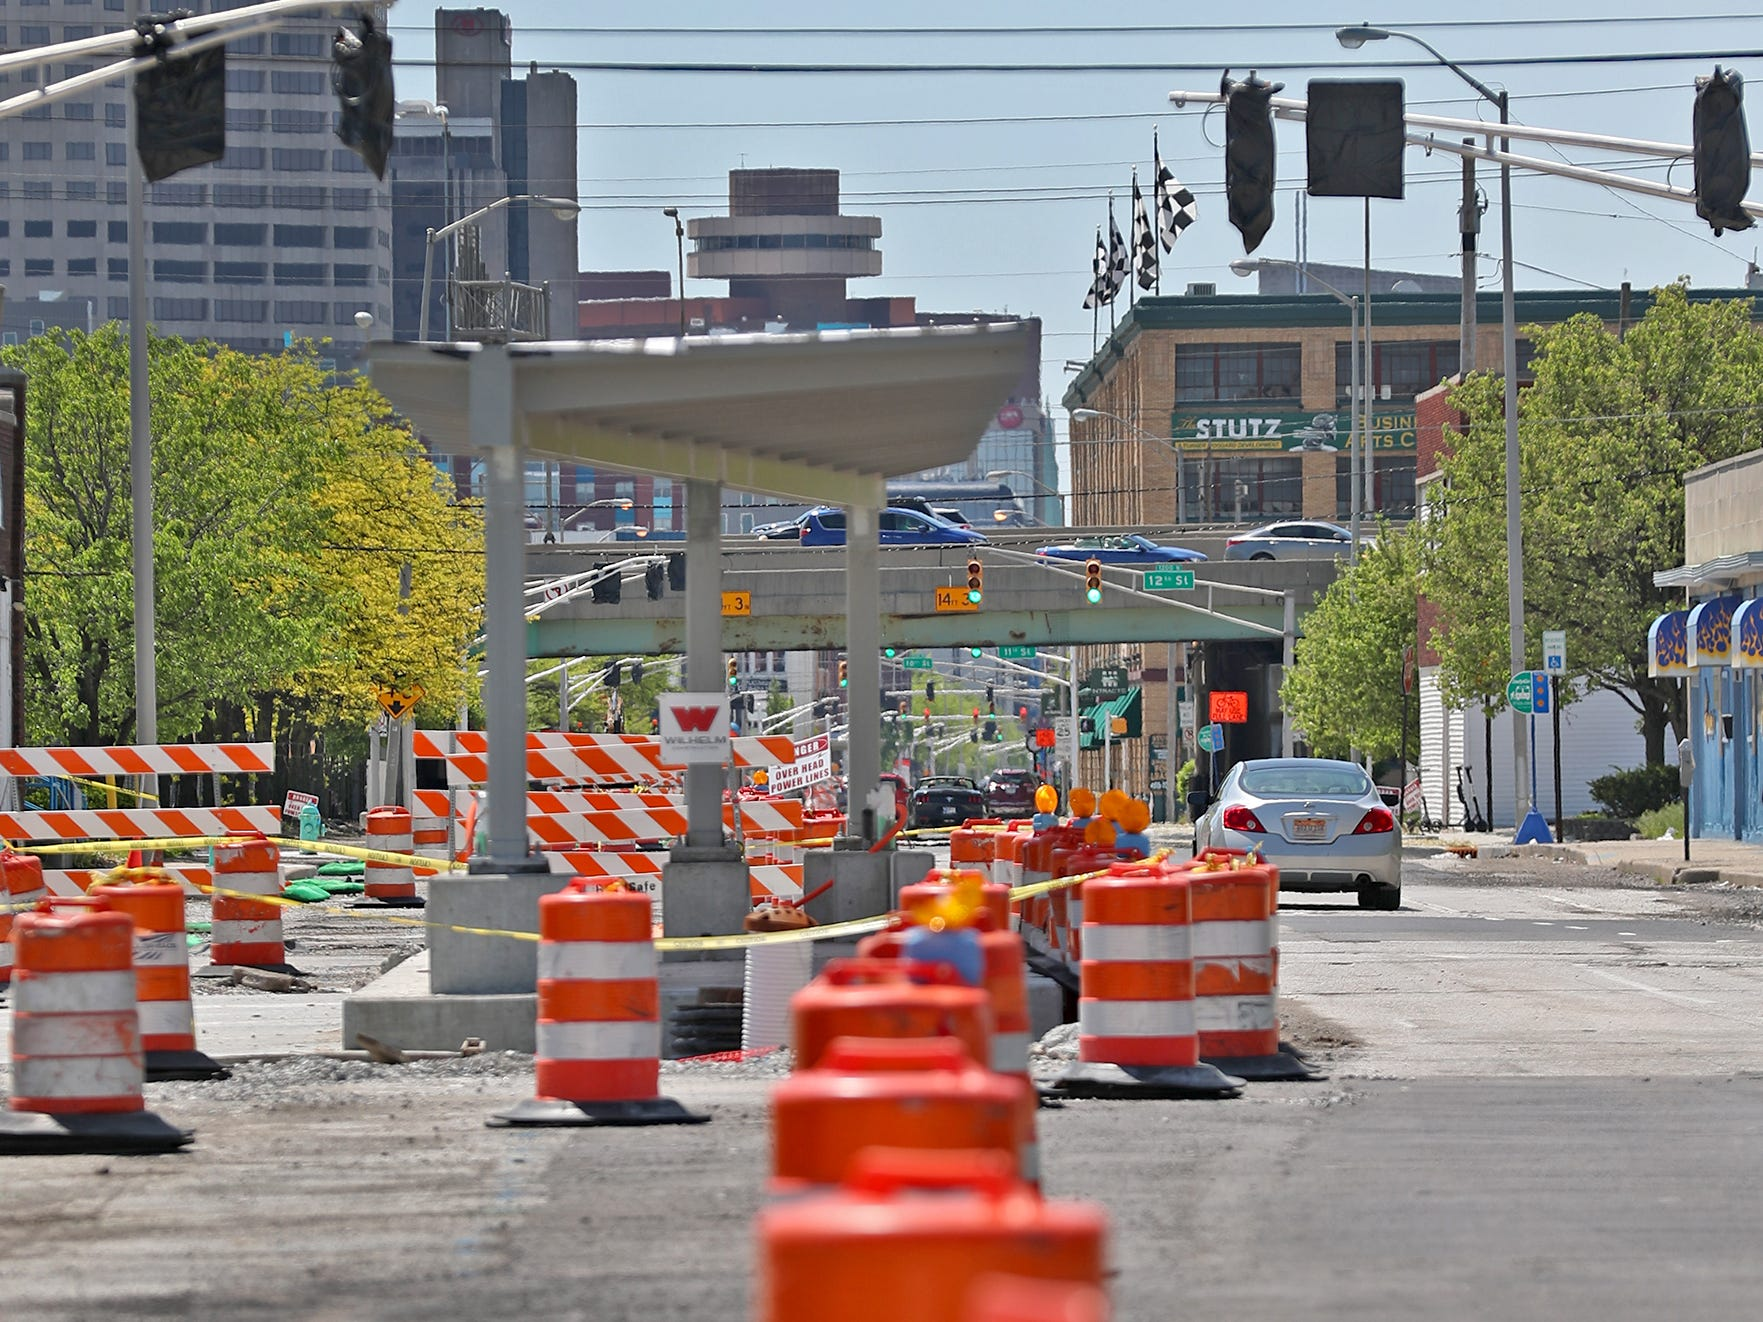 Red Line construction continues in Indianapolis, Sunday, May 5, 2019.  The City has updated the timeline when the Red Line Bus Rapid Transit system should open, which is later in 2019 summer.  This is looking south on Capitol Ave. towards downtown.